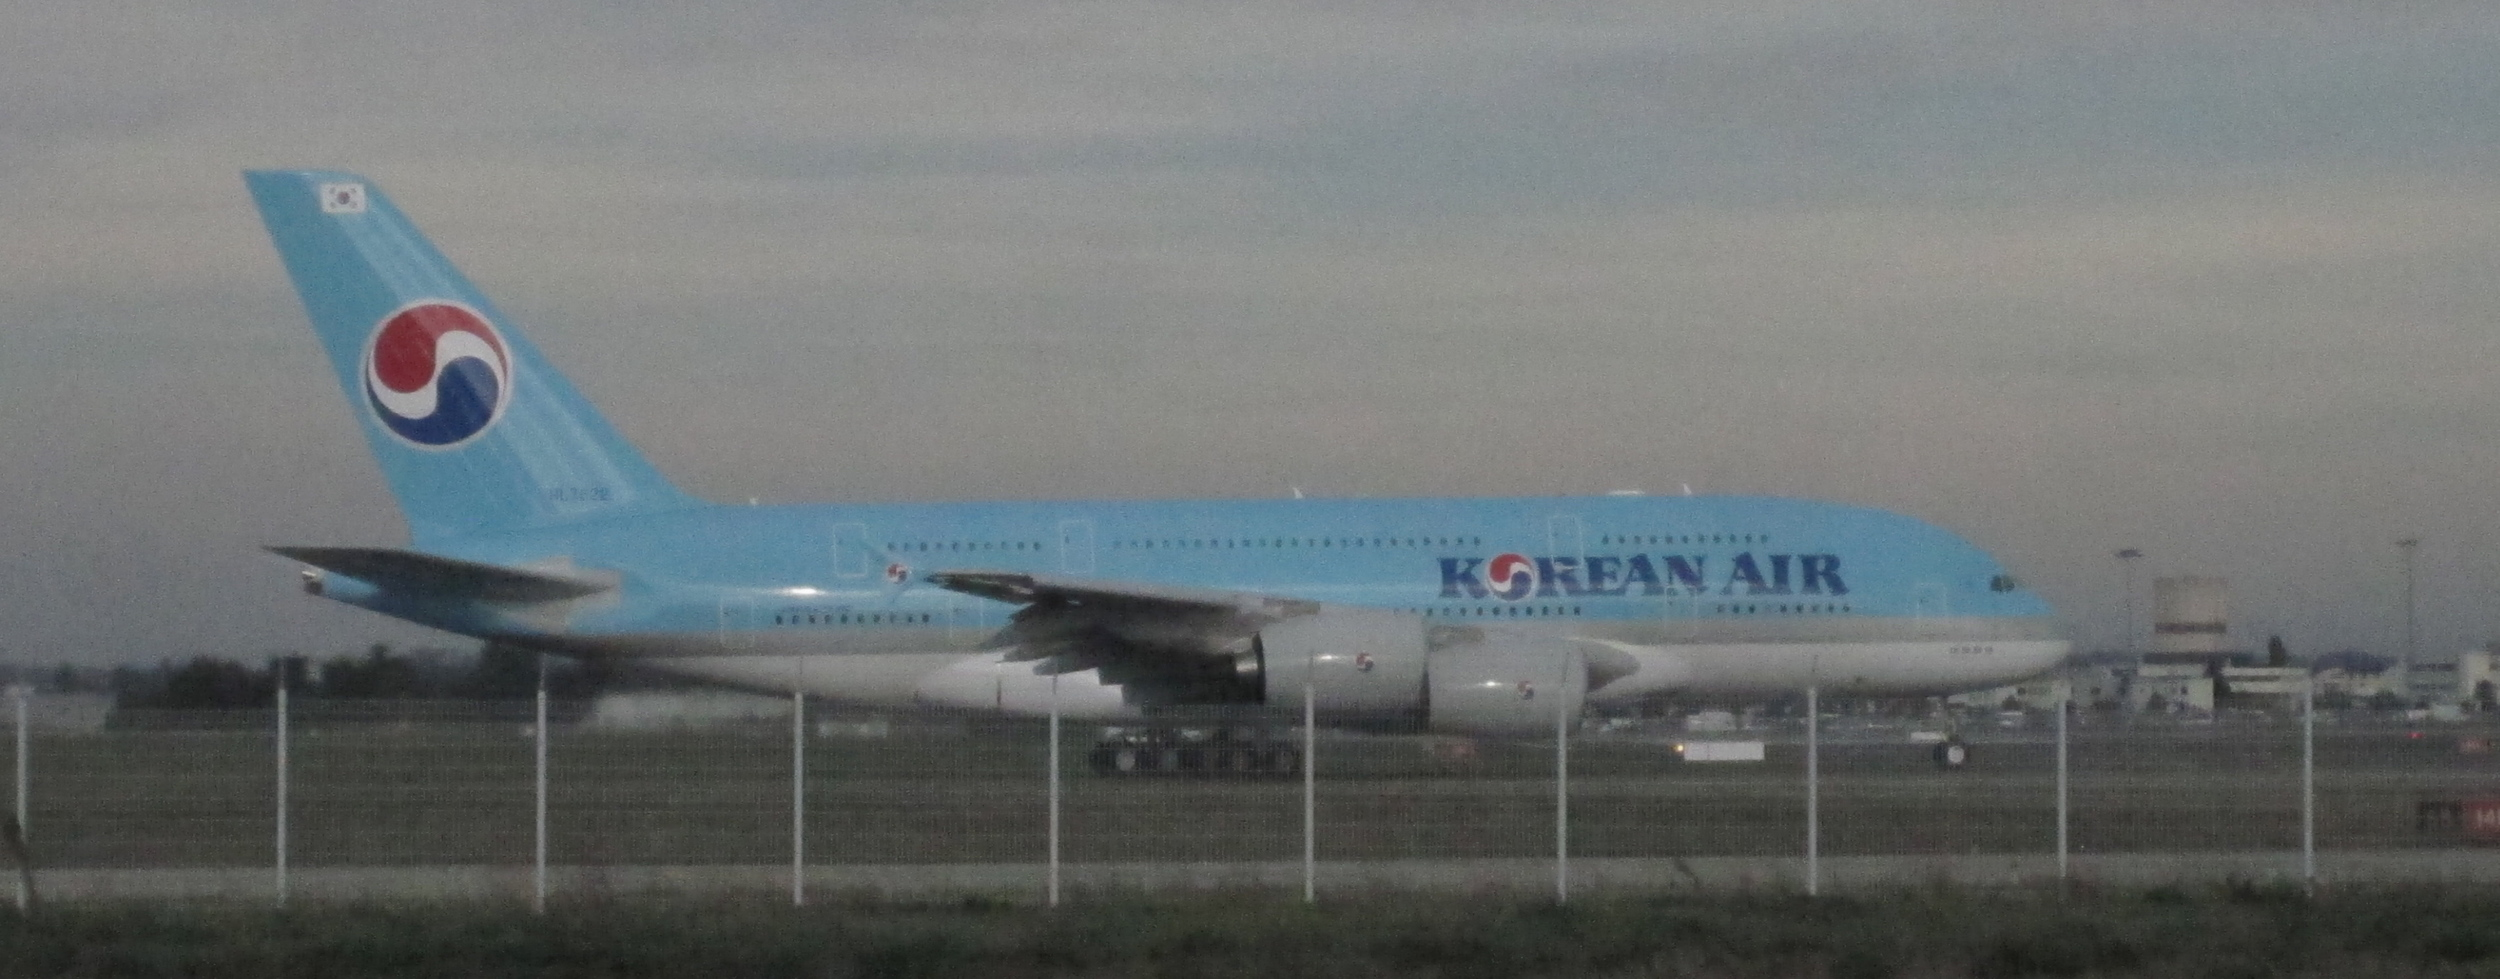 We just caught sight of this Korean Airlines A380 that was about to take off from Toulouse